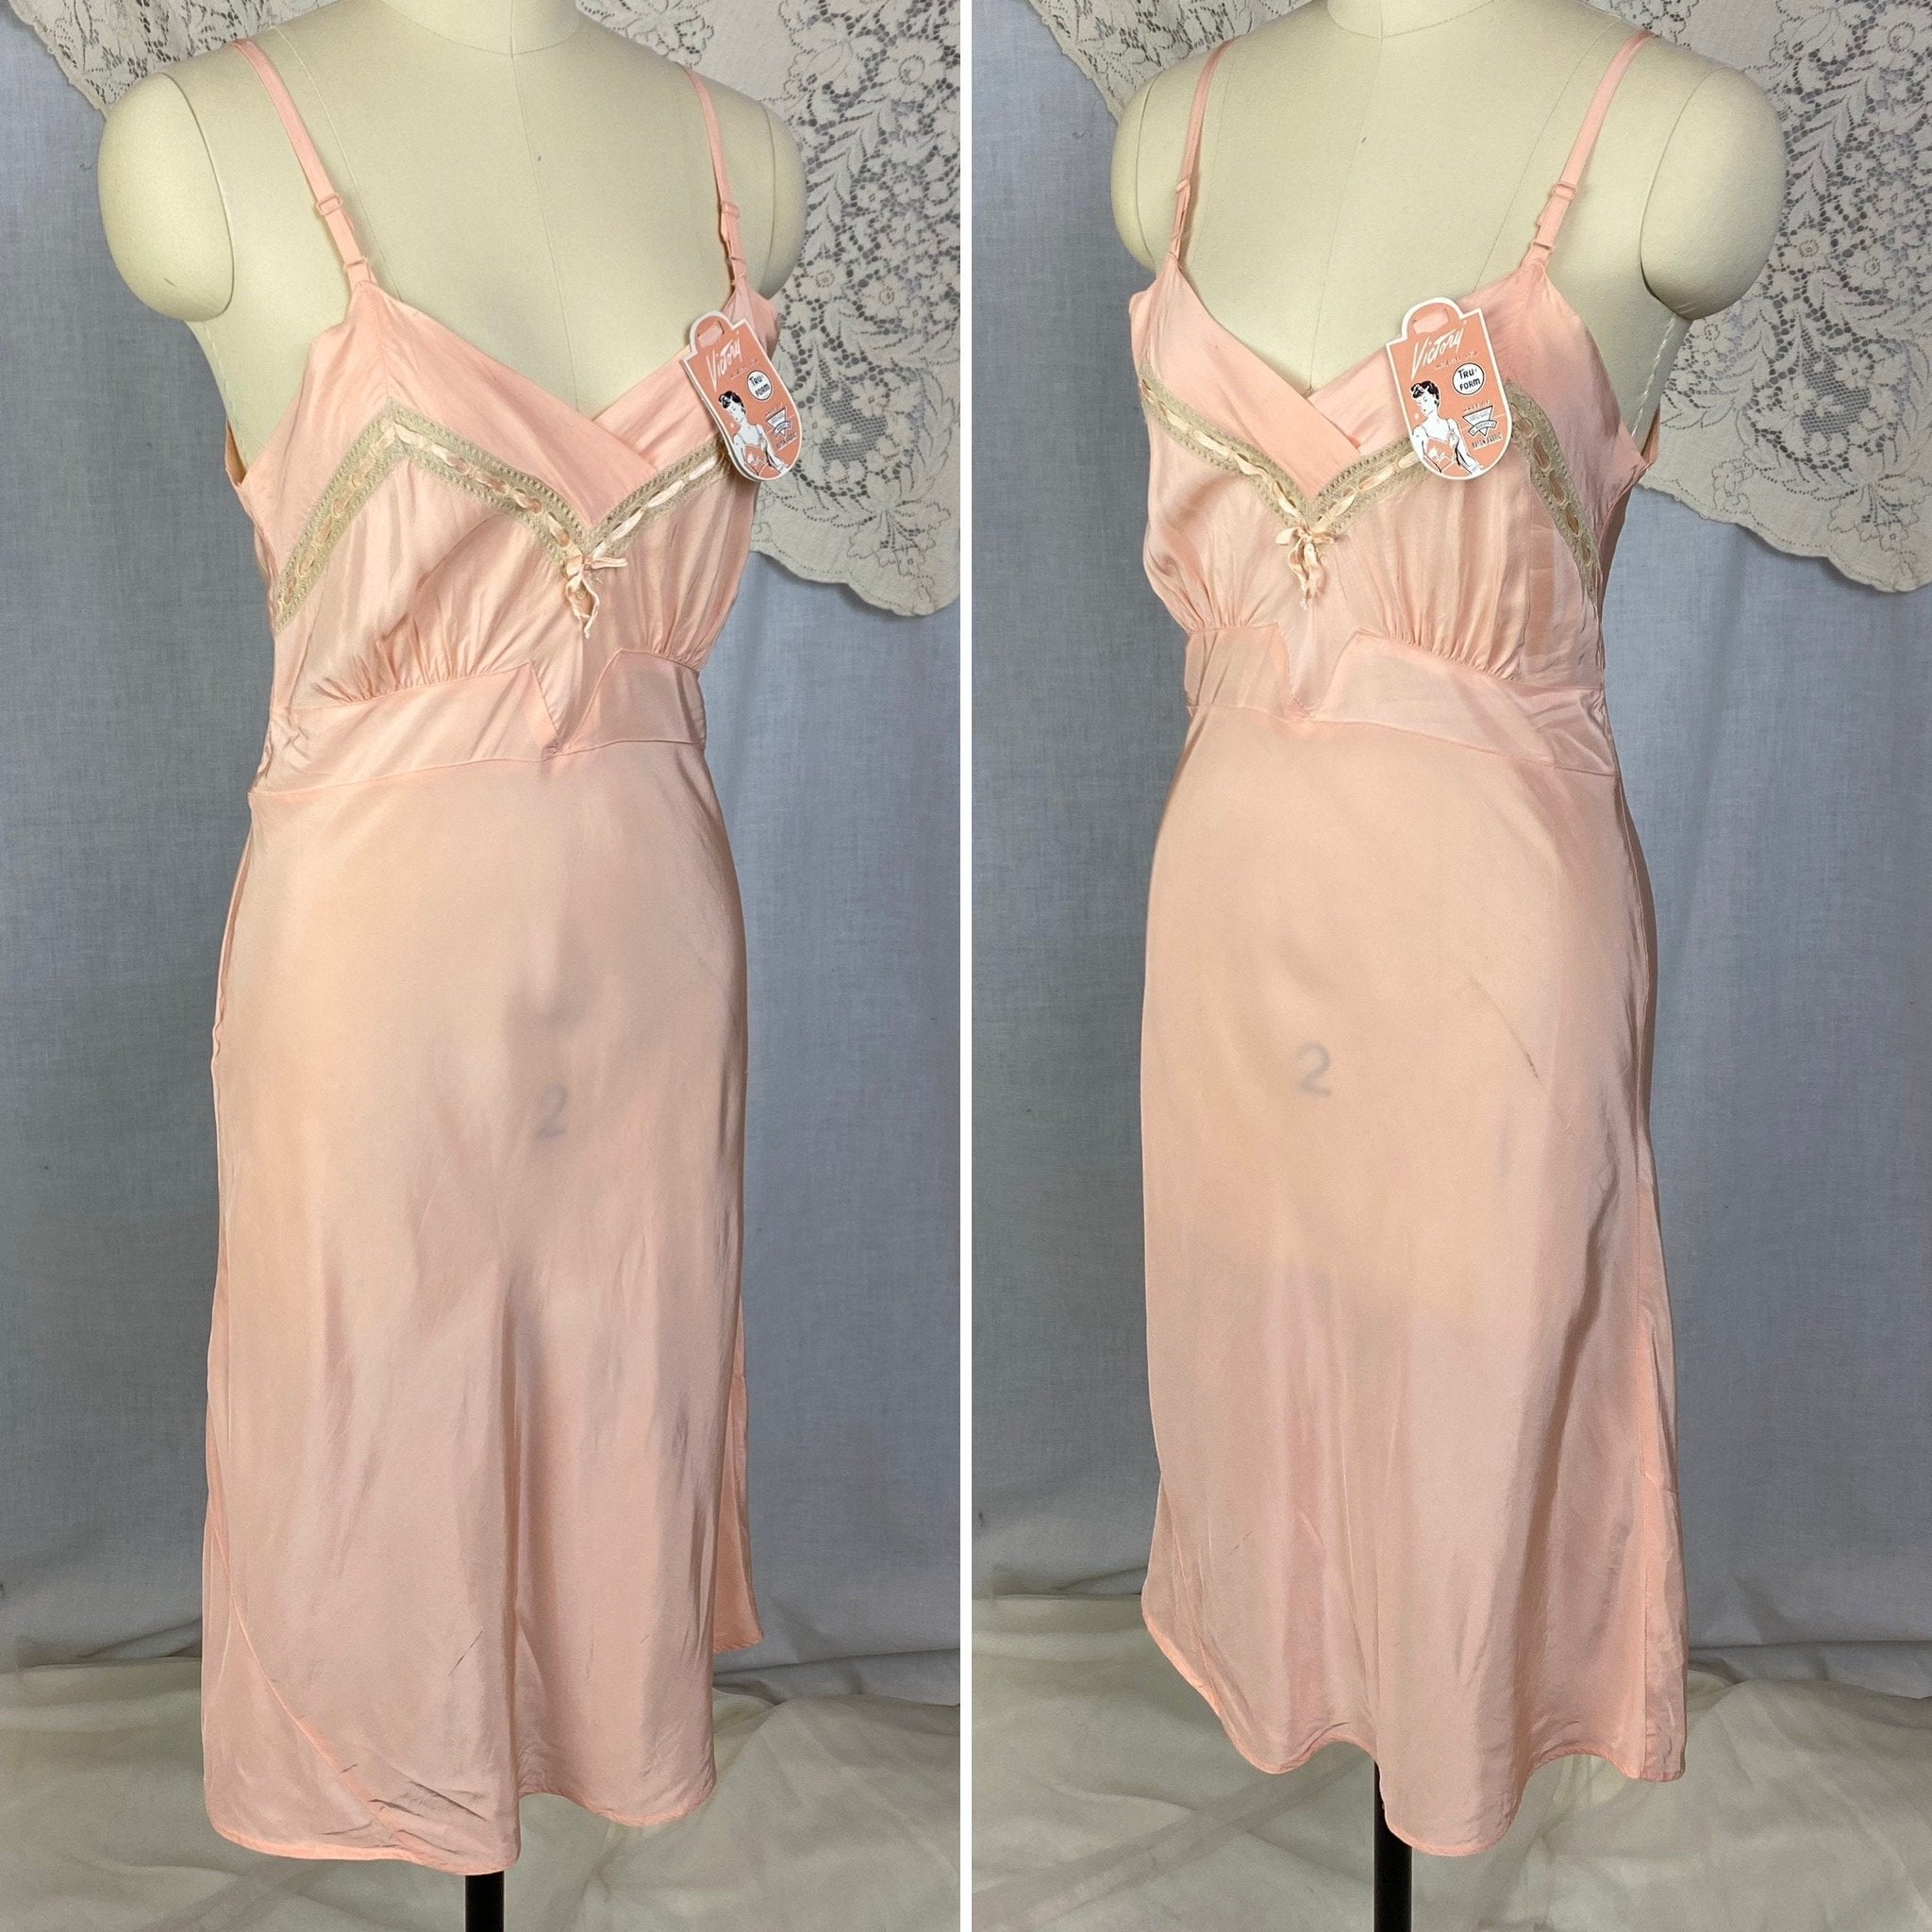 Vintage 1940's Slip | Rich Blush Pink Rayon with Nude Lace | Size 34 Bust, S | Tru-Form, New with Tags - Daggers & Dames